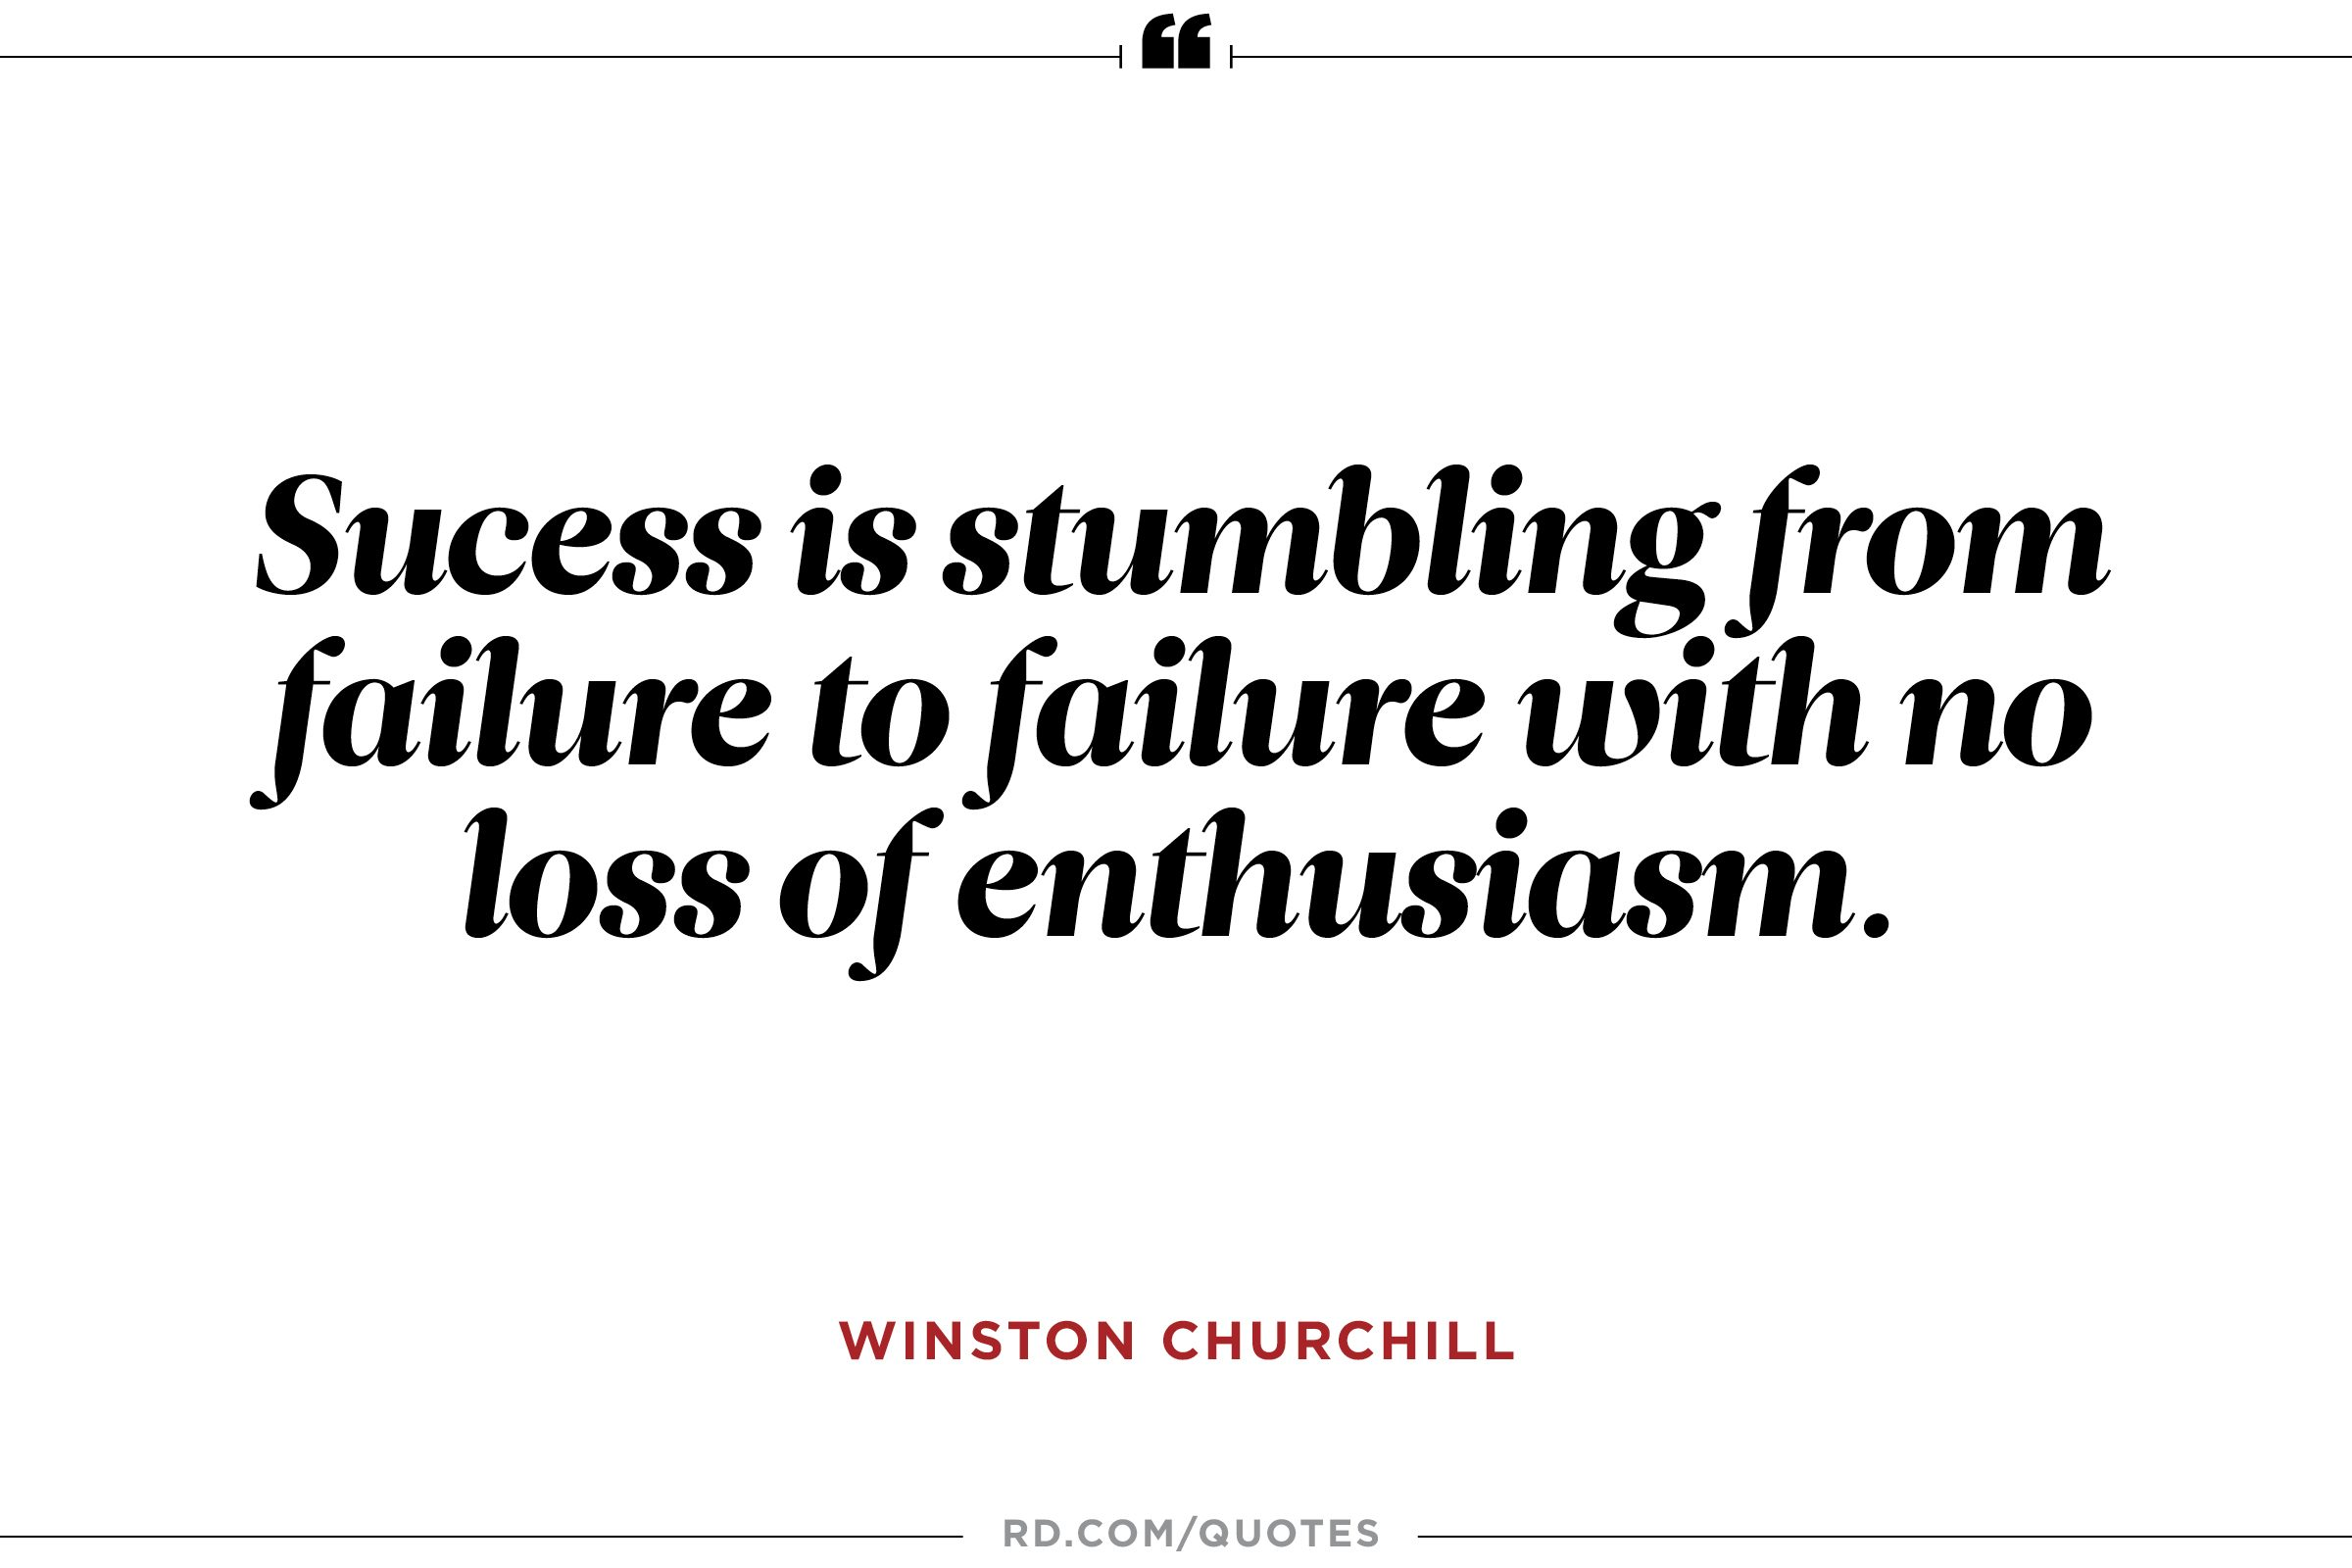 Success is stumbling from failure to failure